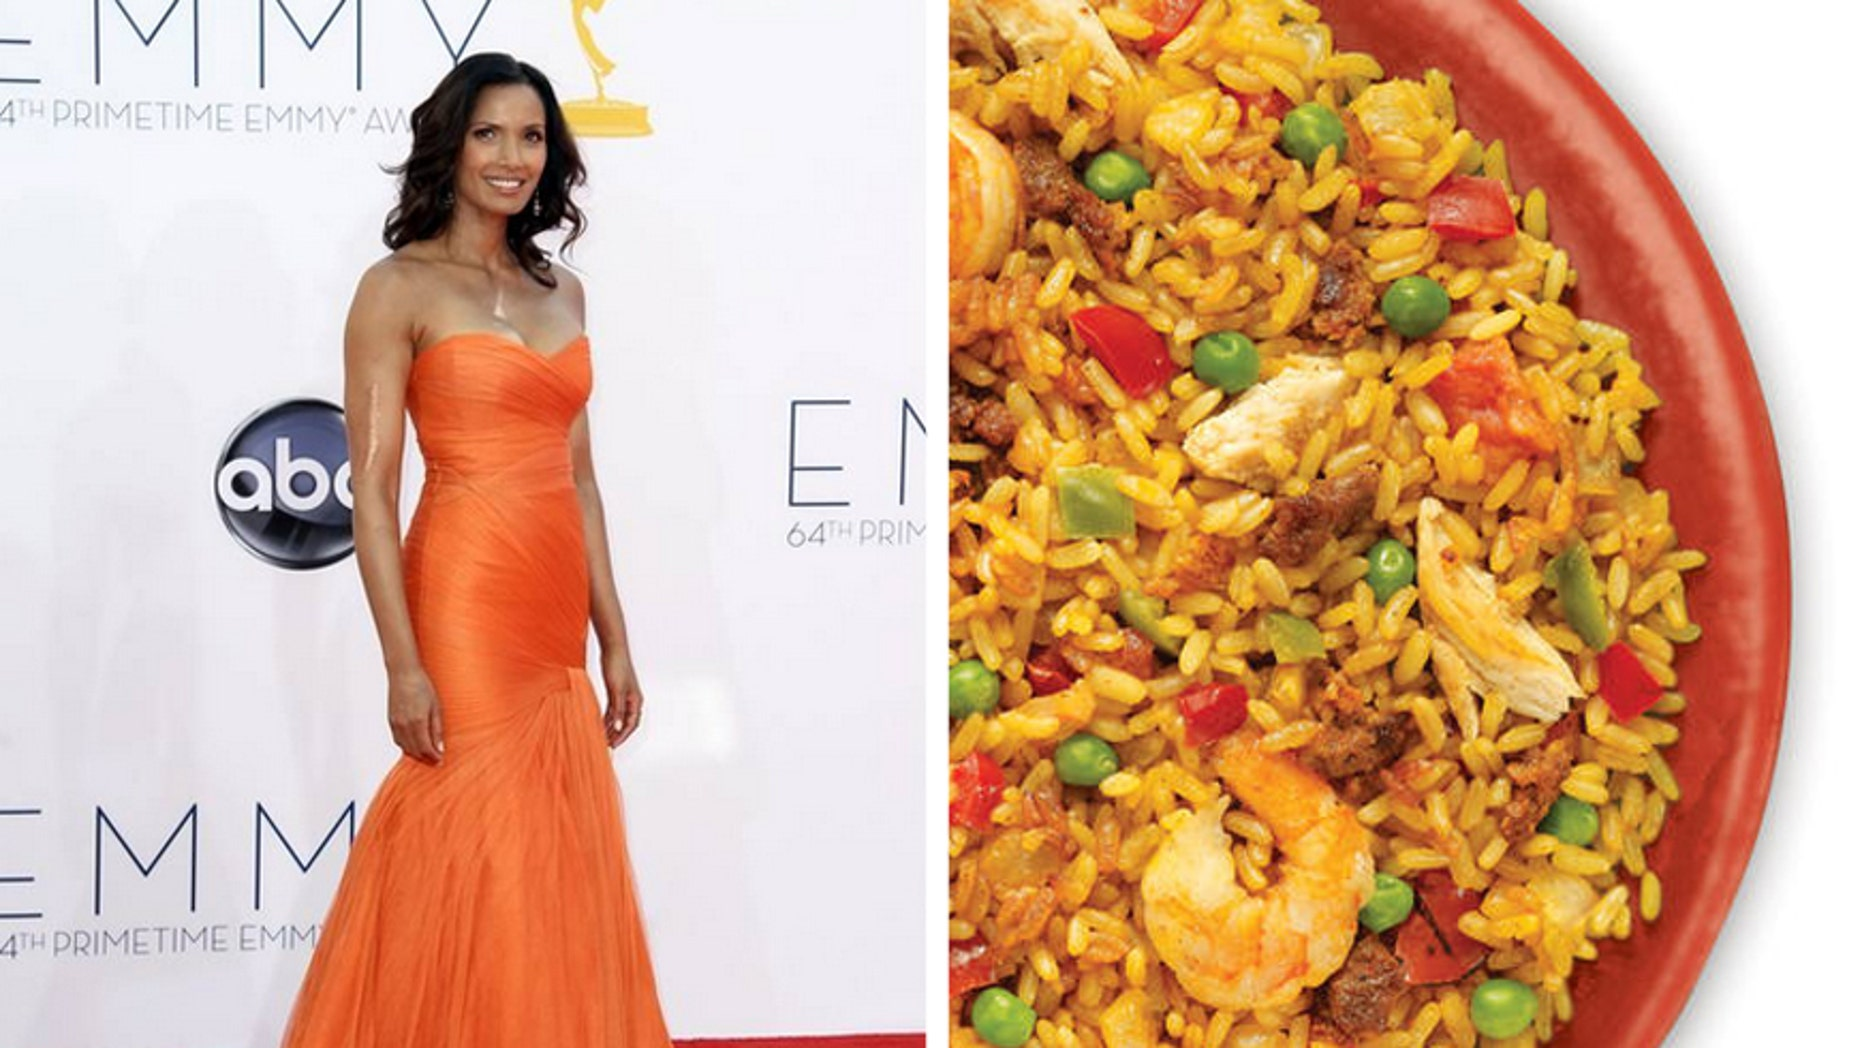 Padma Lakshmi has a frozen paella dish now available at Costco.